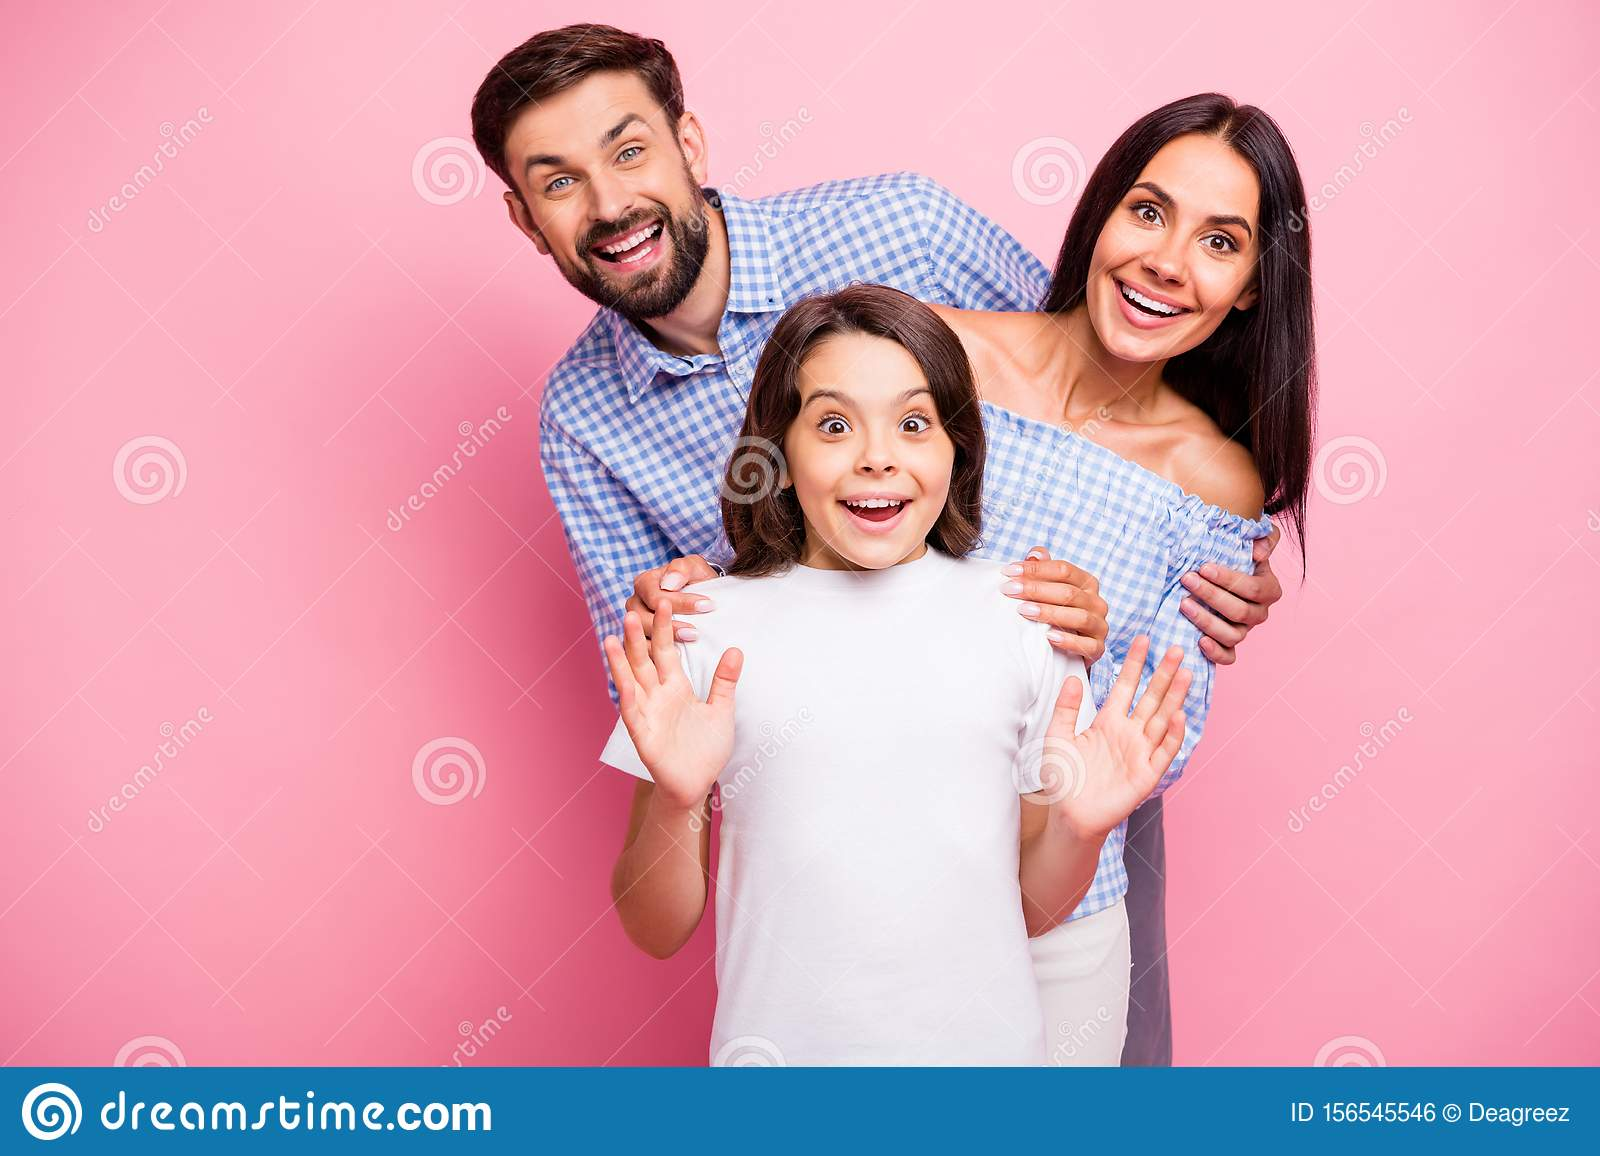 Portrait of cheerful people screaming wow omg wearing checkered top white t-shirt isolated over pink background